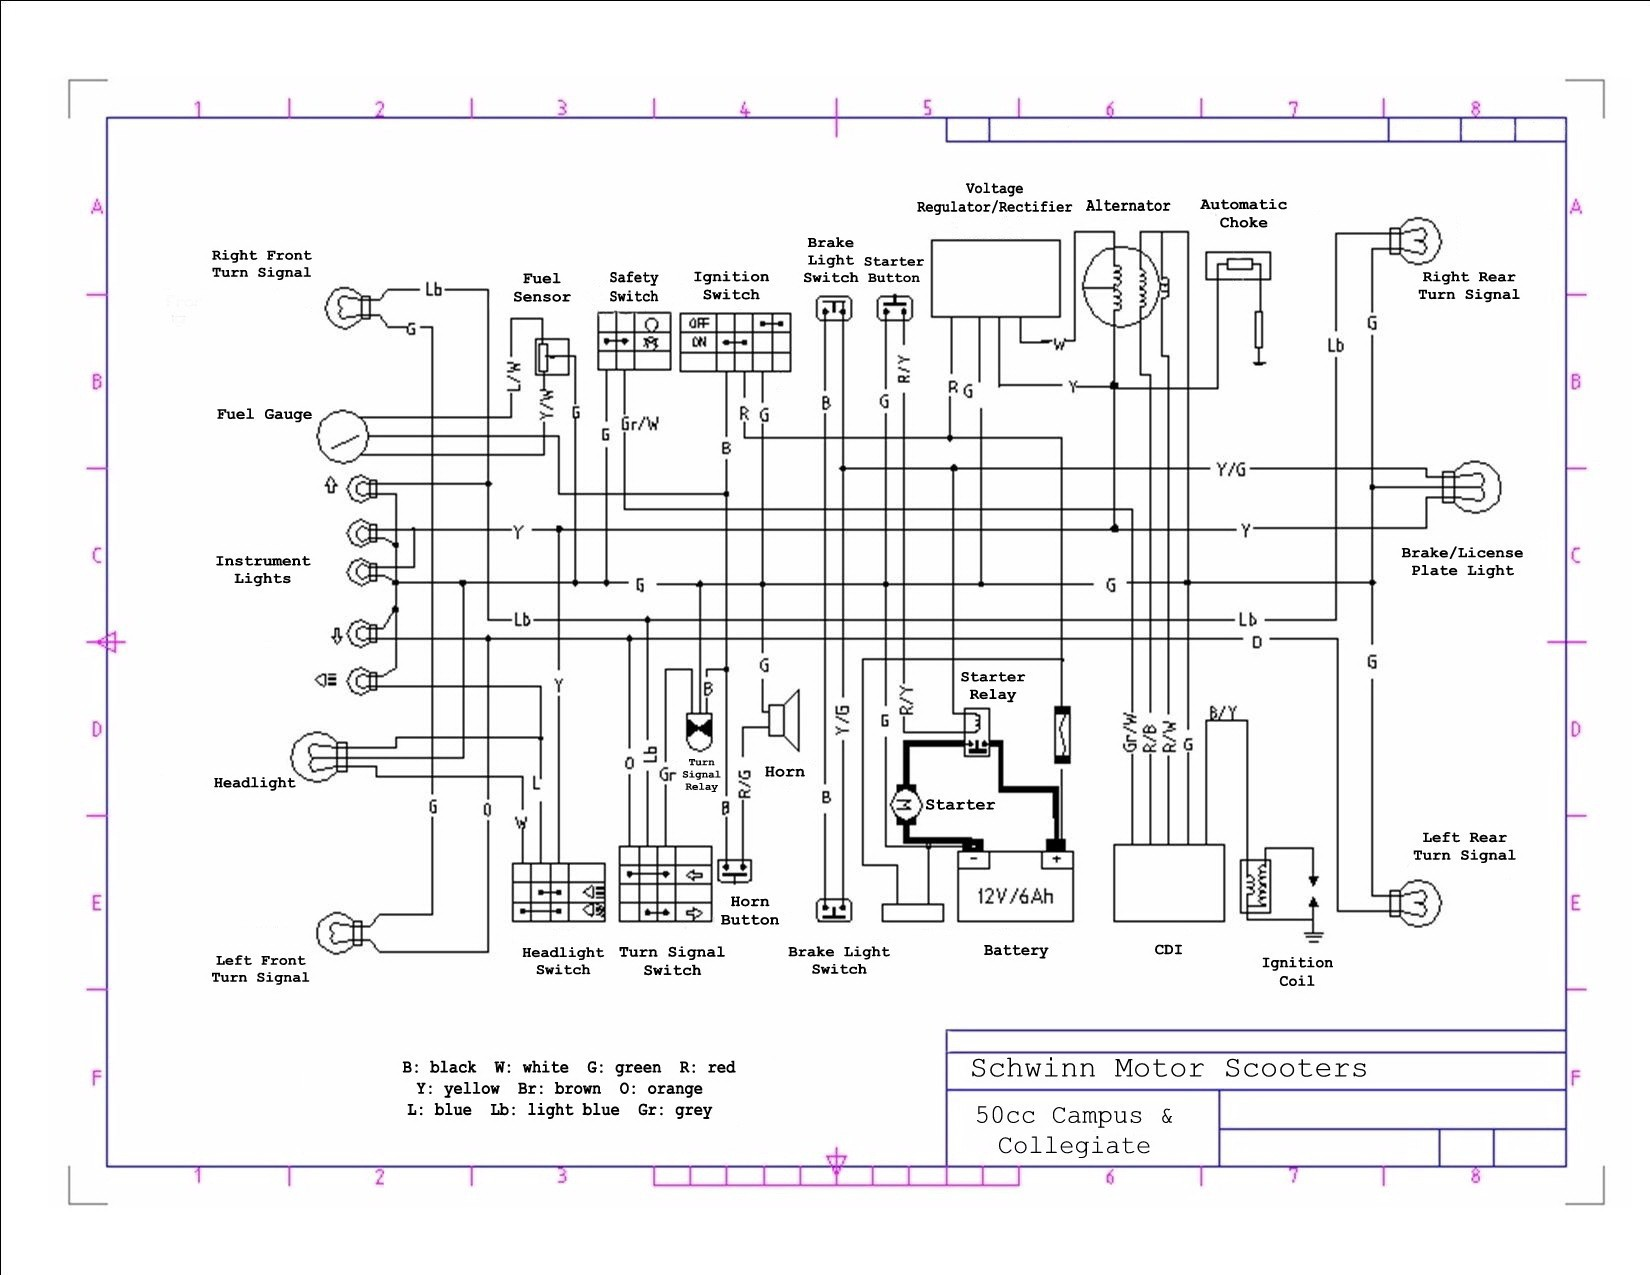 hight resolution of 50cc scooter headlight wiring diagram wiring schematic diagram scooter magneto wiring diagram wiring library 50cc scooter